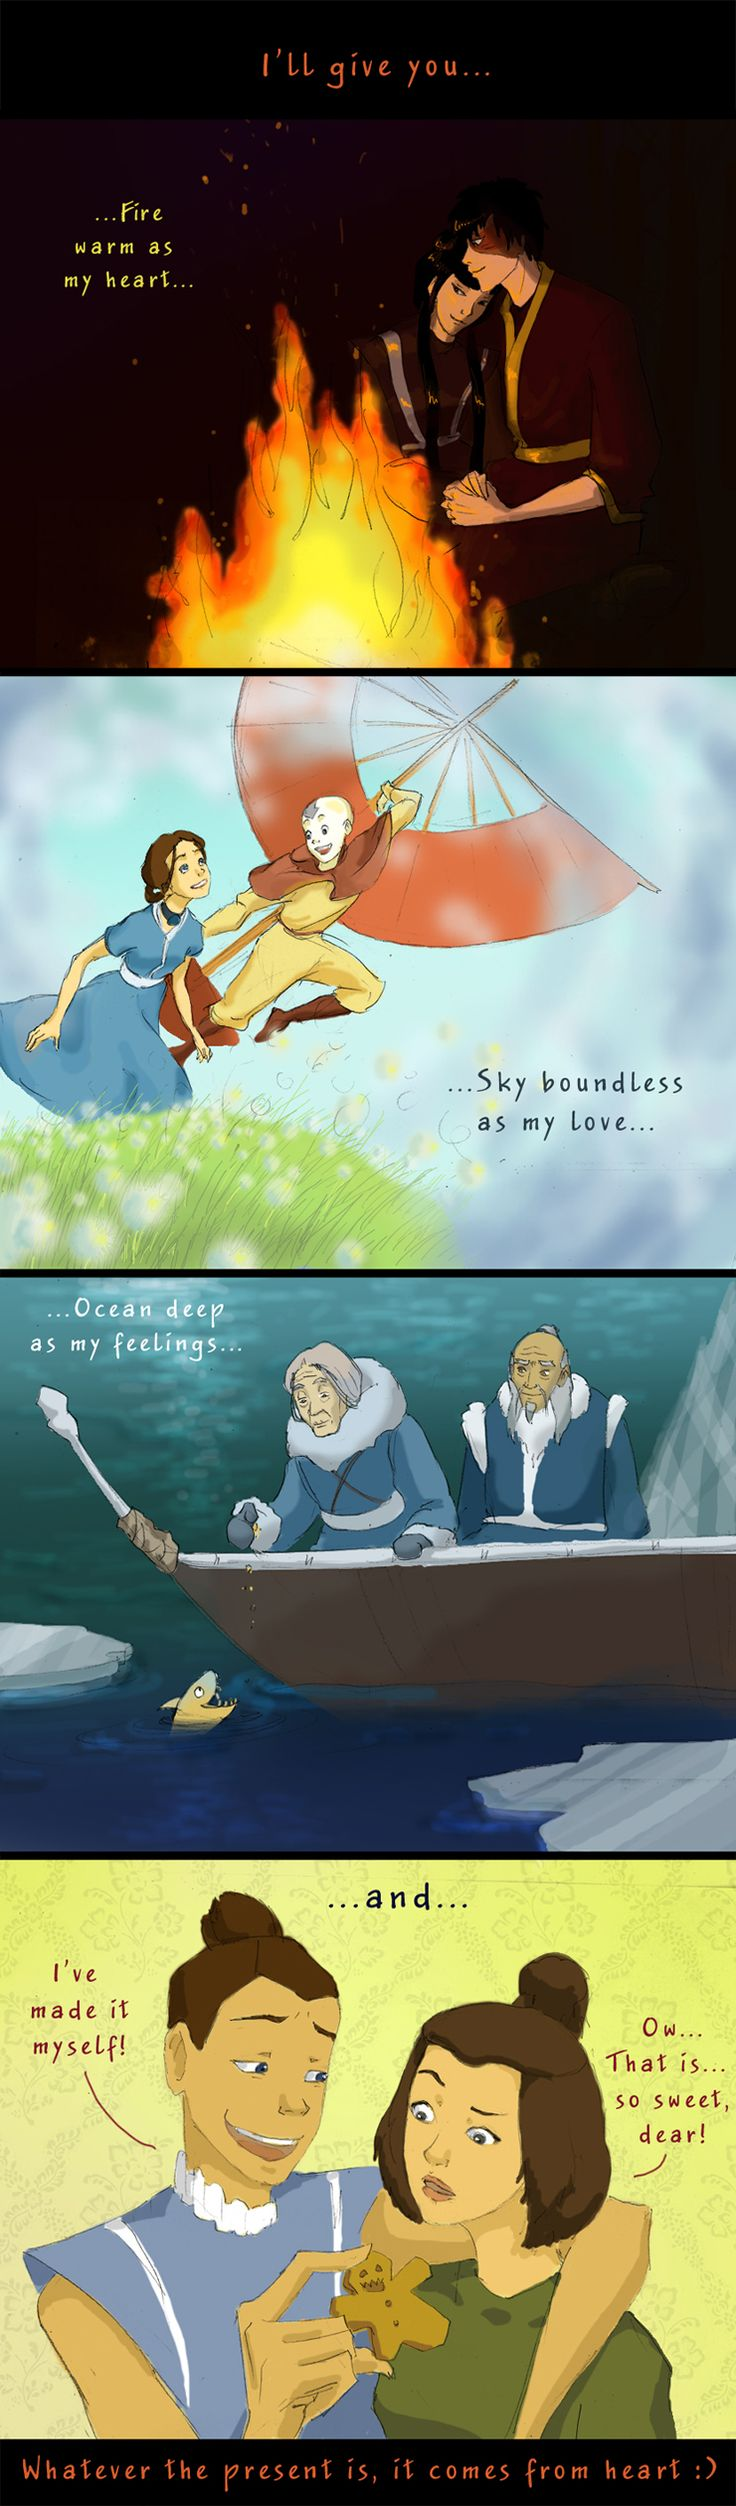 Avatar presents by ~Helkaril on deviantART... I don't ship maiko or kataang...... or suka,,, but I just thought this was funny.